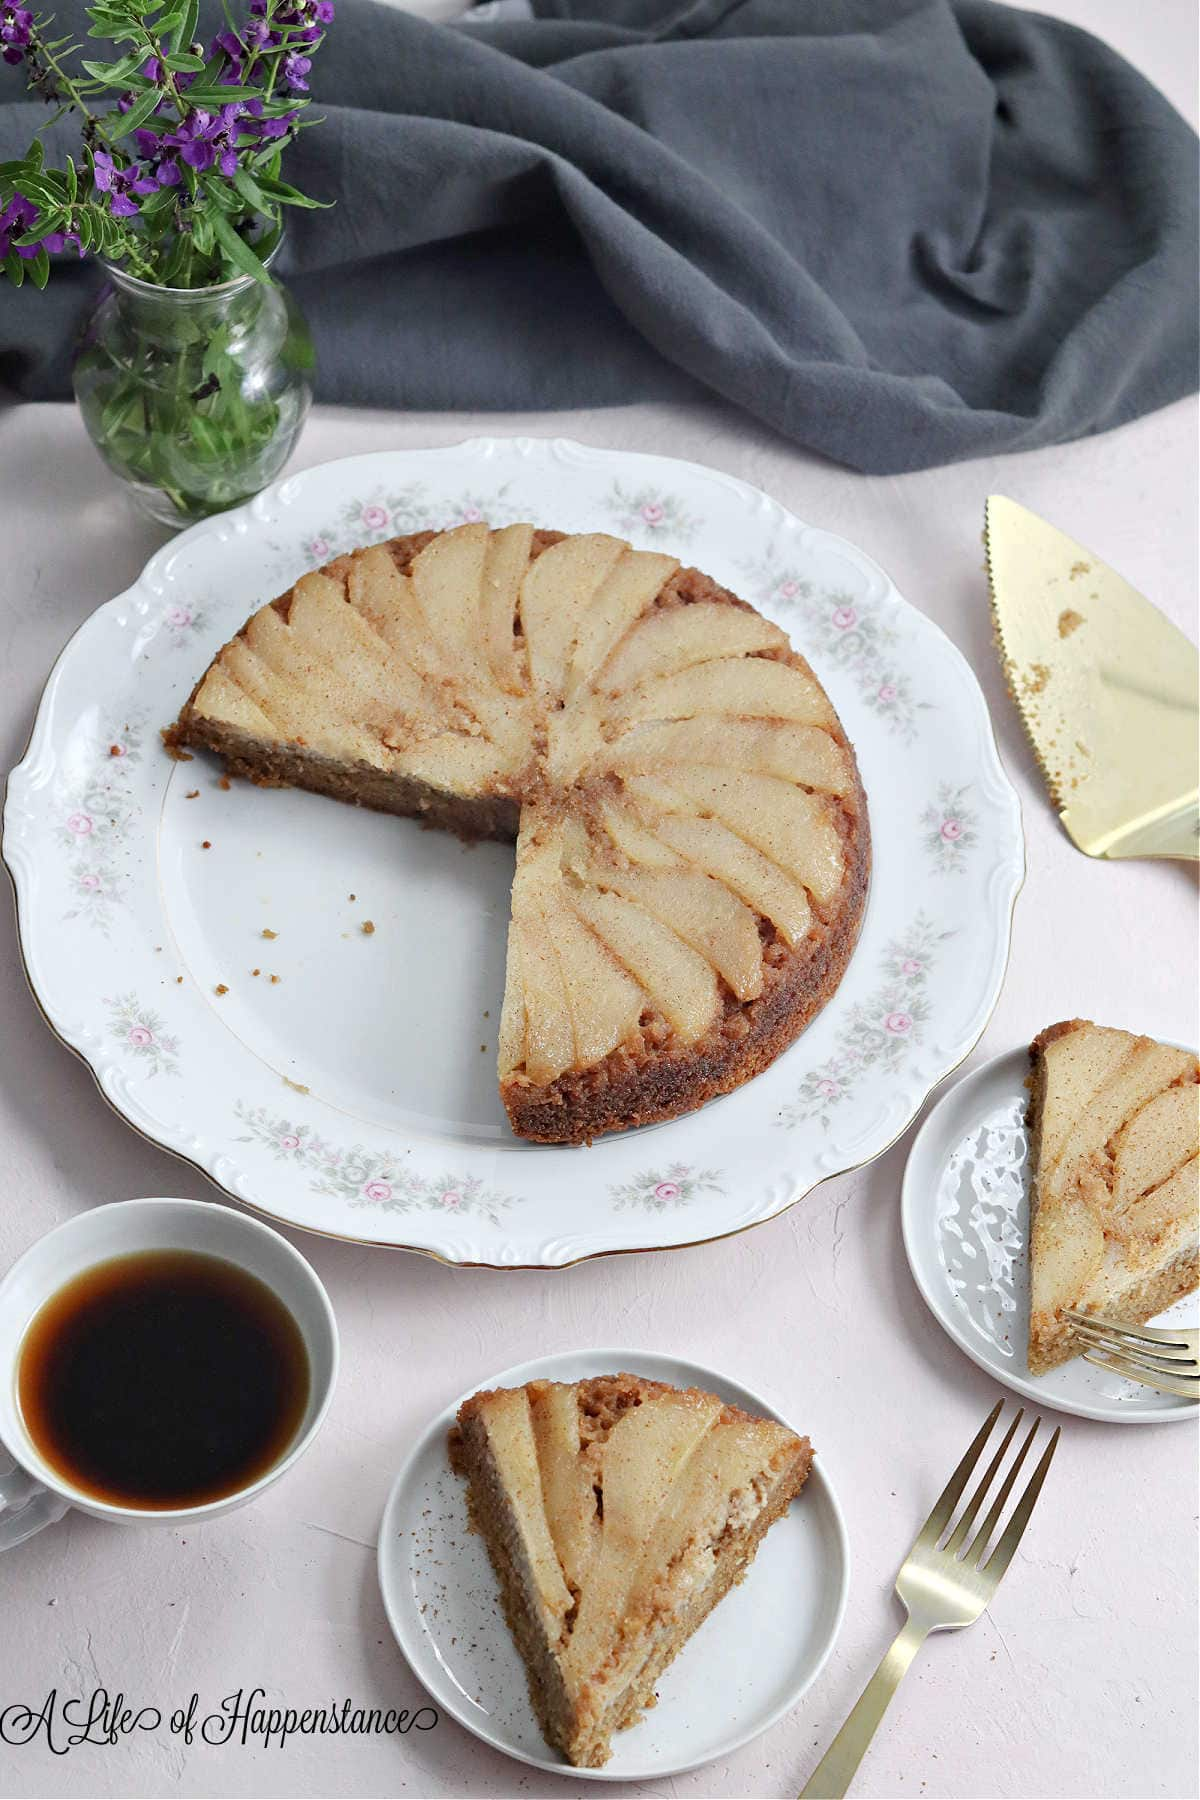 Slices of cake on white plates along with a cup of coffee and a gray kitchen towel.